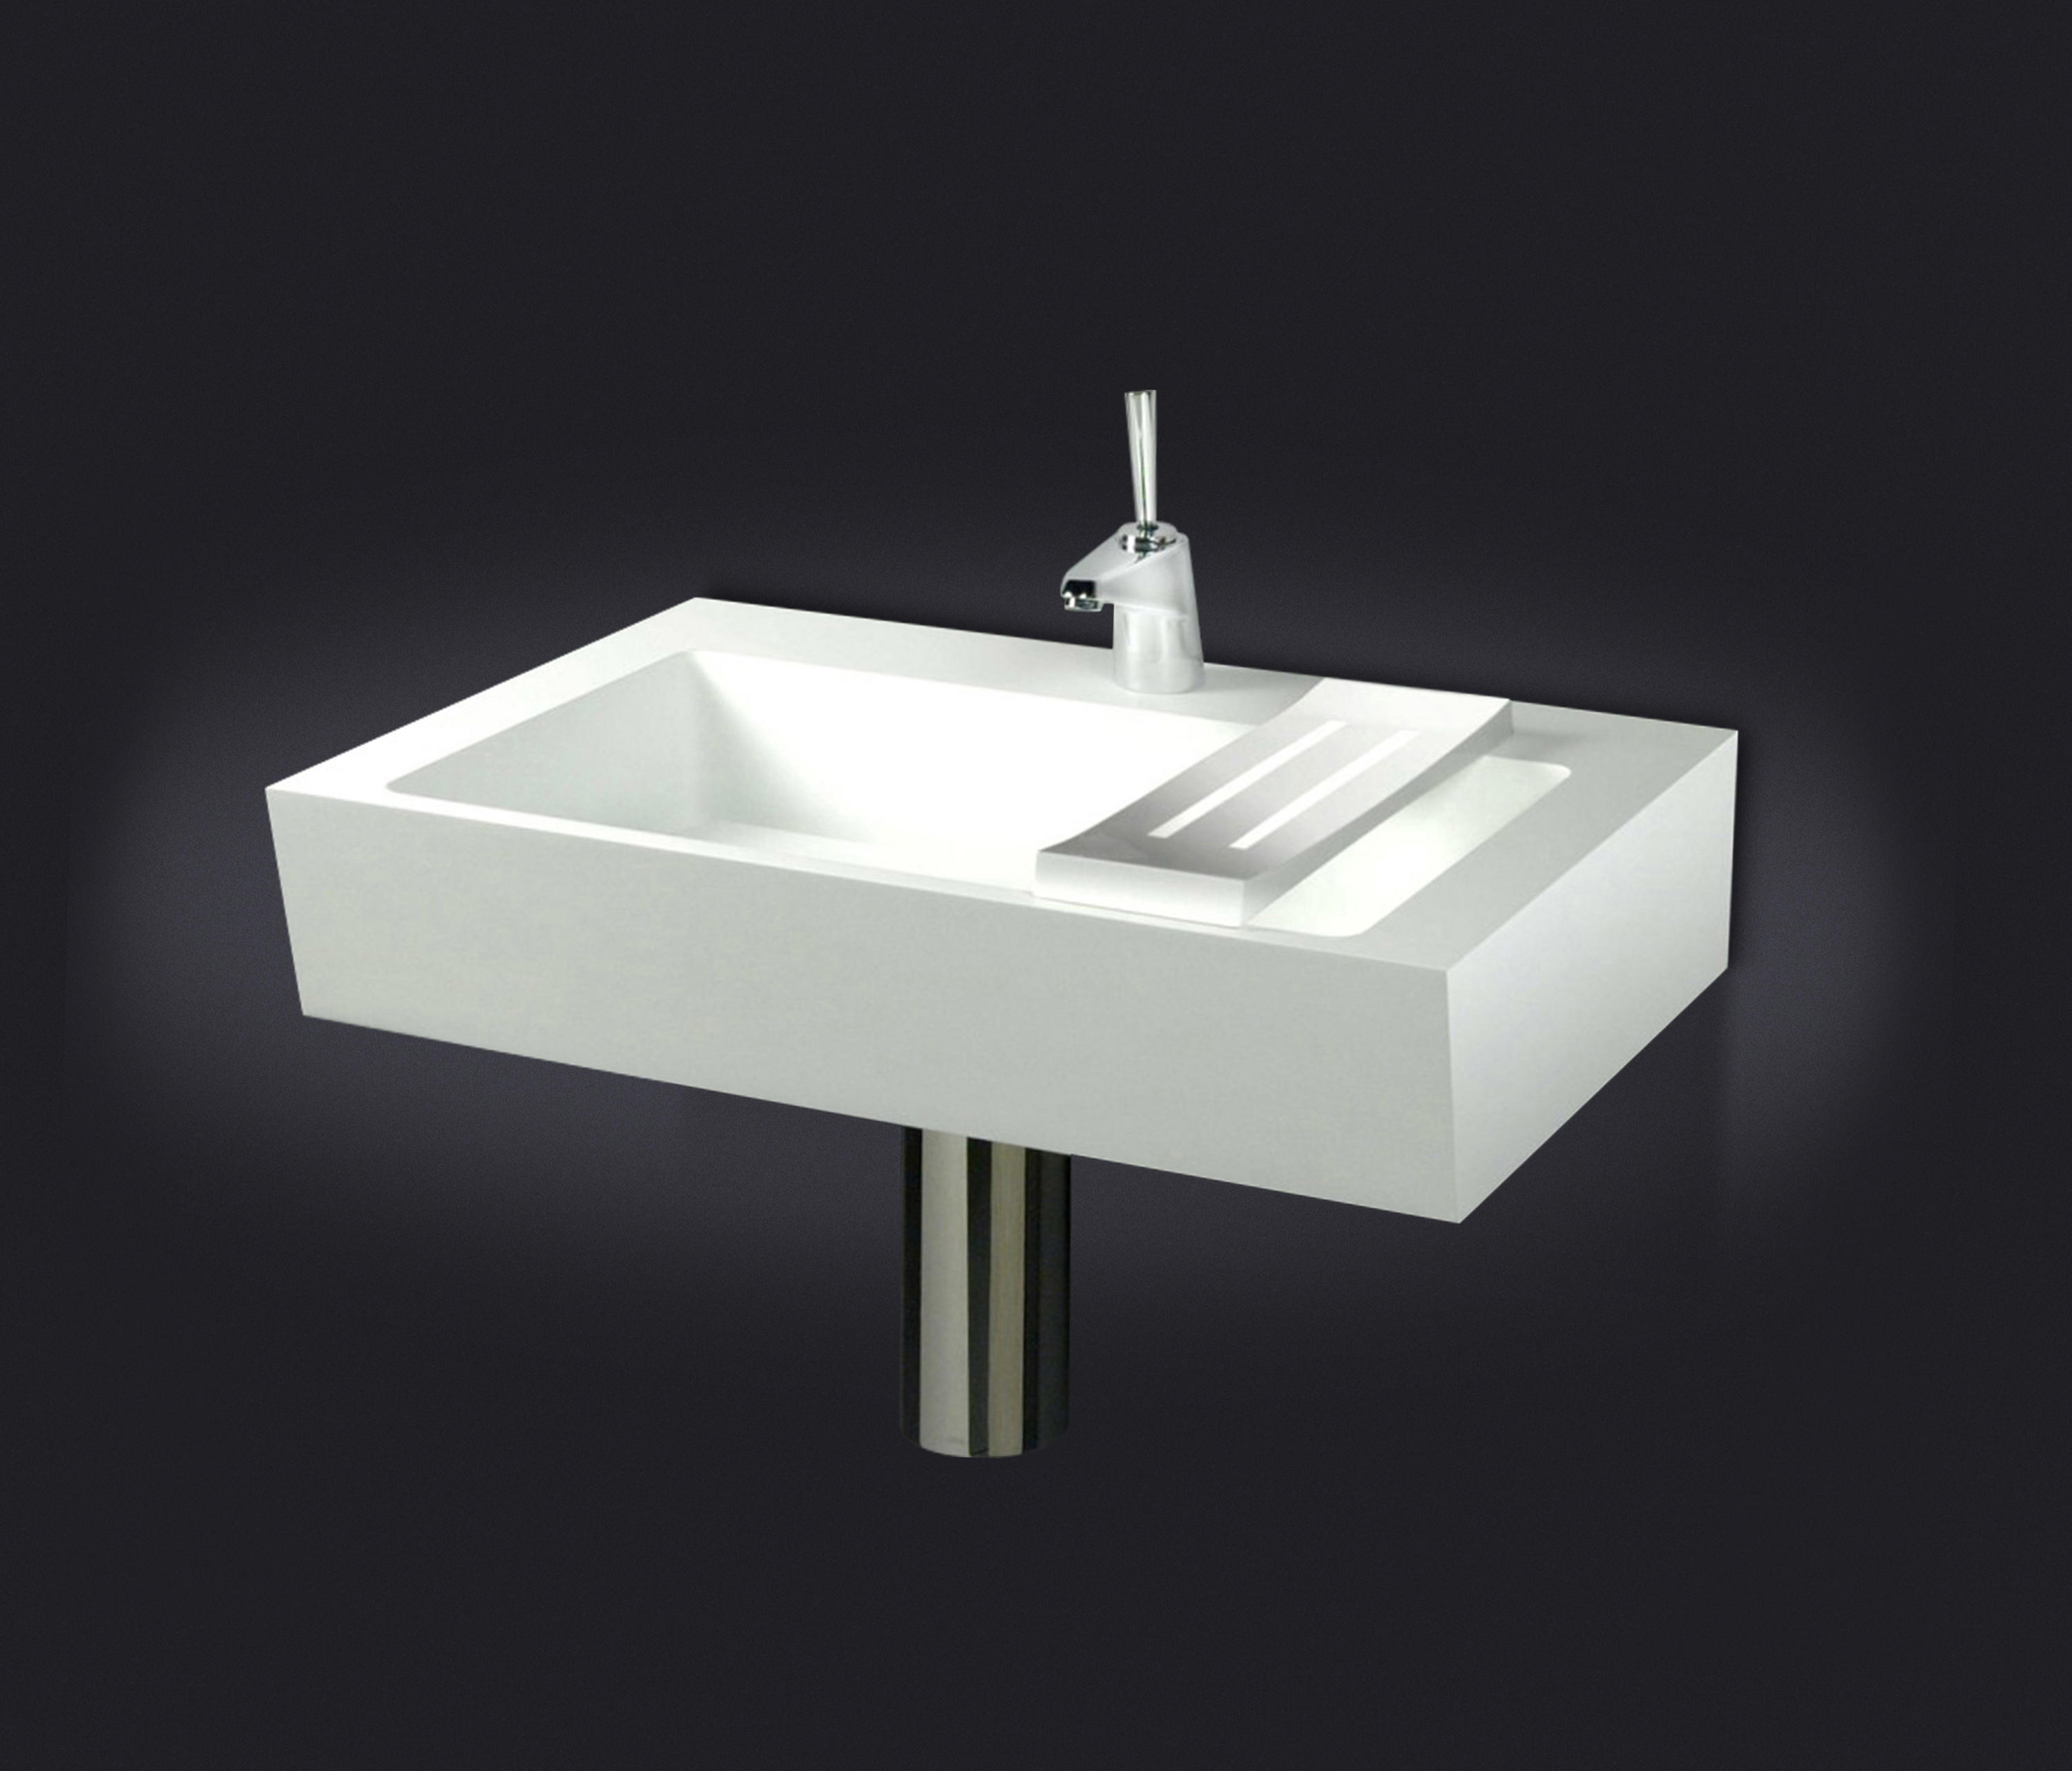 Good Plano Inclinado Wall Mounted Washbasin by Vallv Wash basins